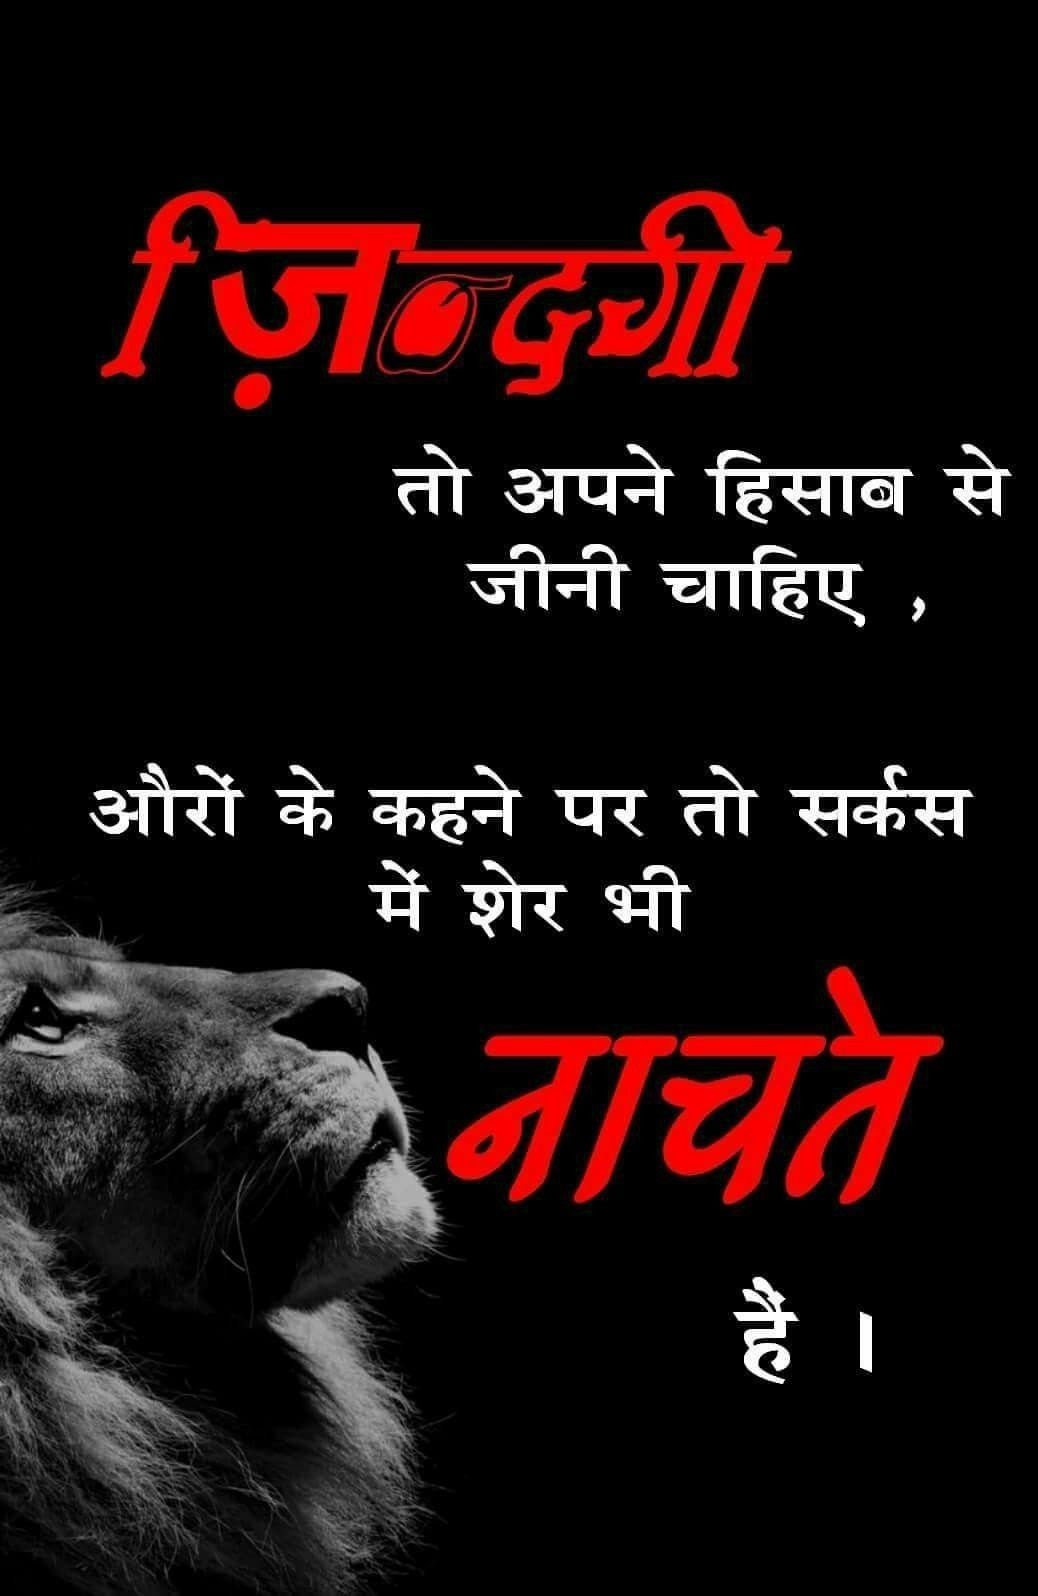 Vips.. 🍀 Zindagi quotes, Good thoughts quotes